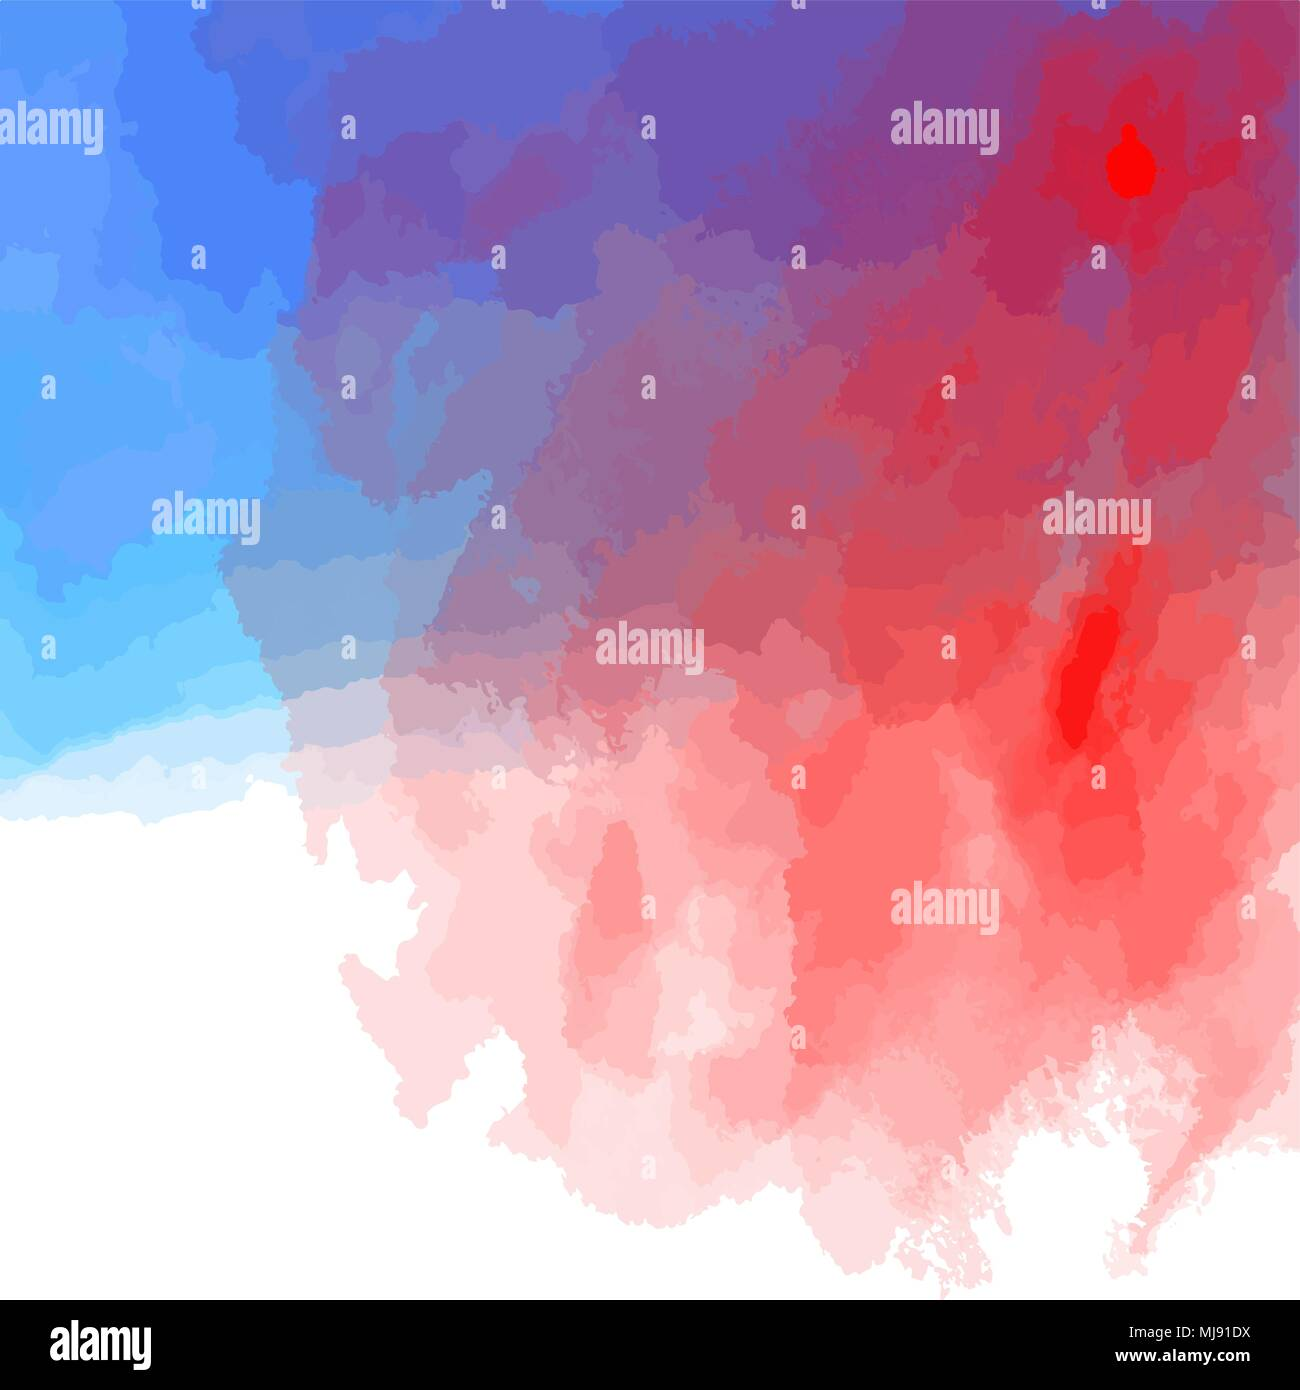 red and blue watercolor background vector concept design hand drawn digital asset stock vector image art alamy https www alamy com red and blue watercolor background vector concept design hand drawn digital asset image183366230 html